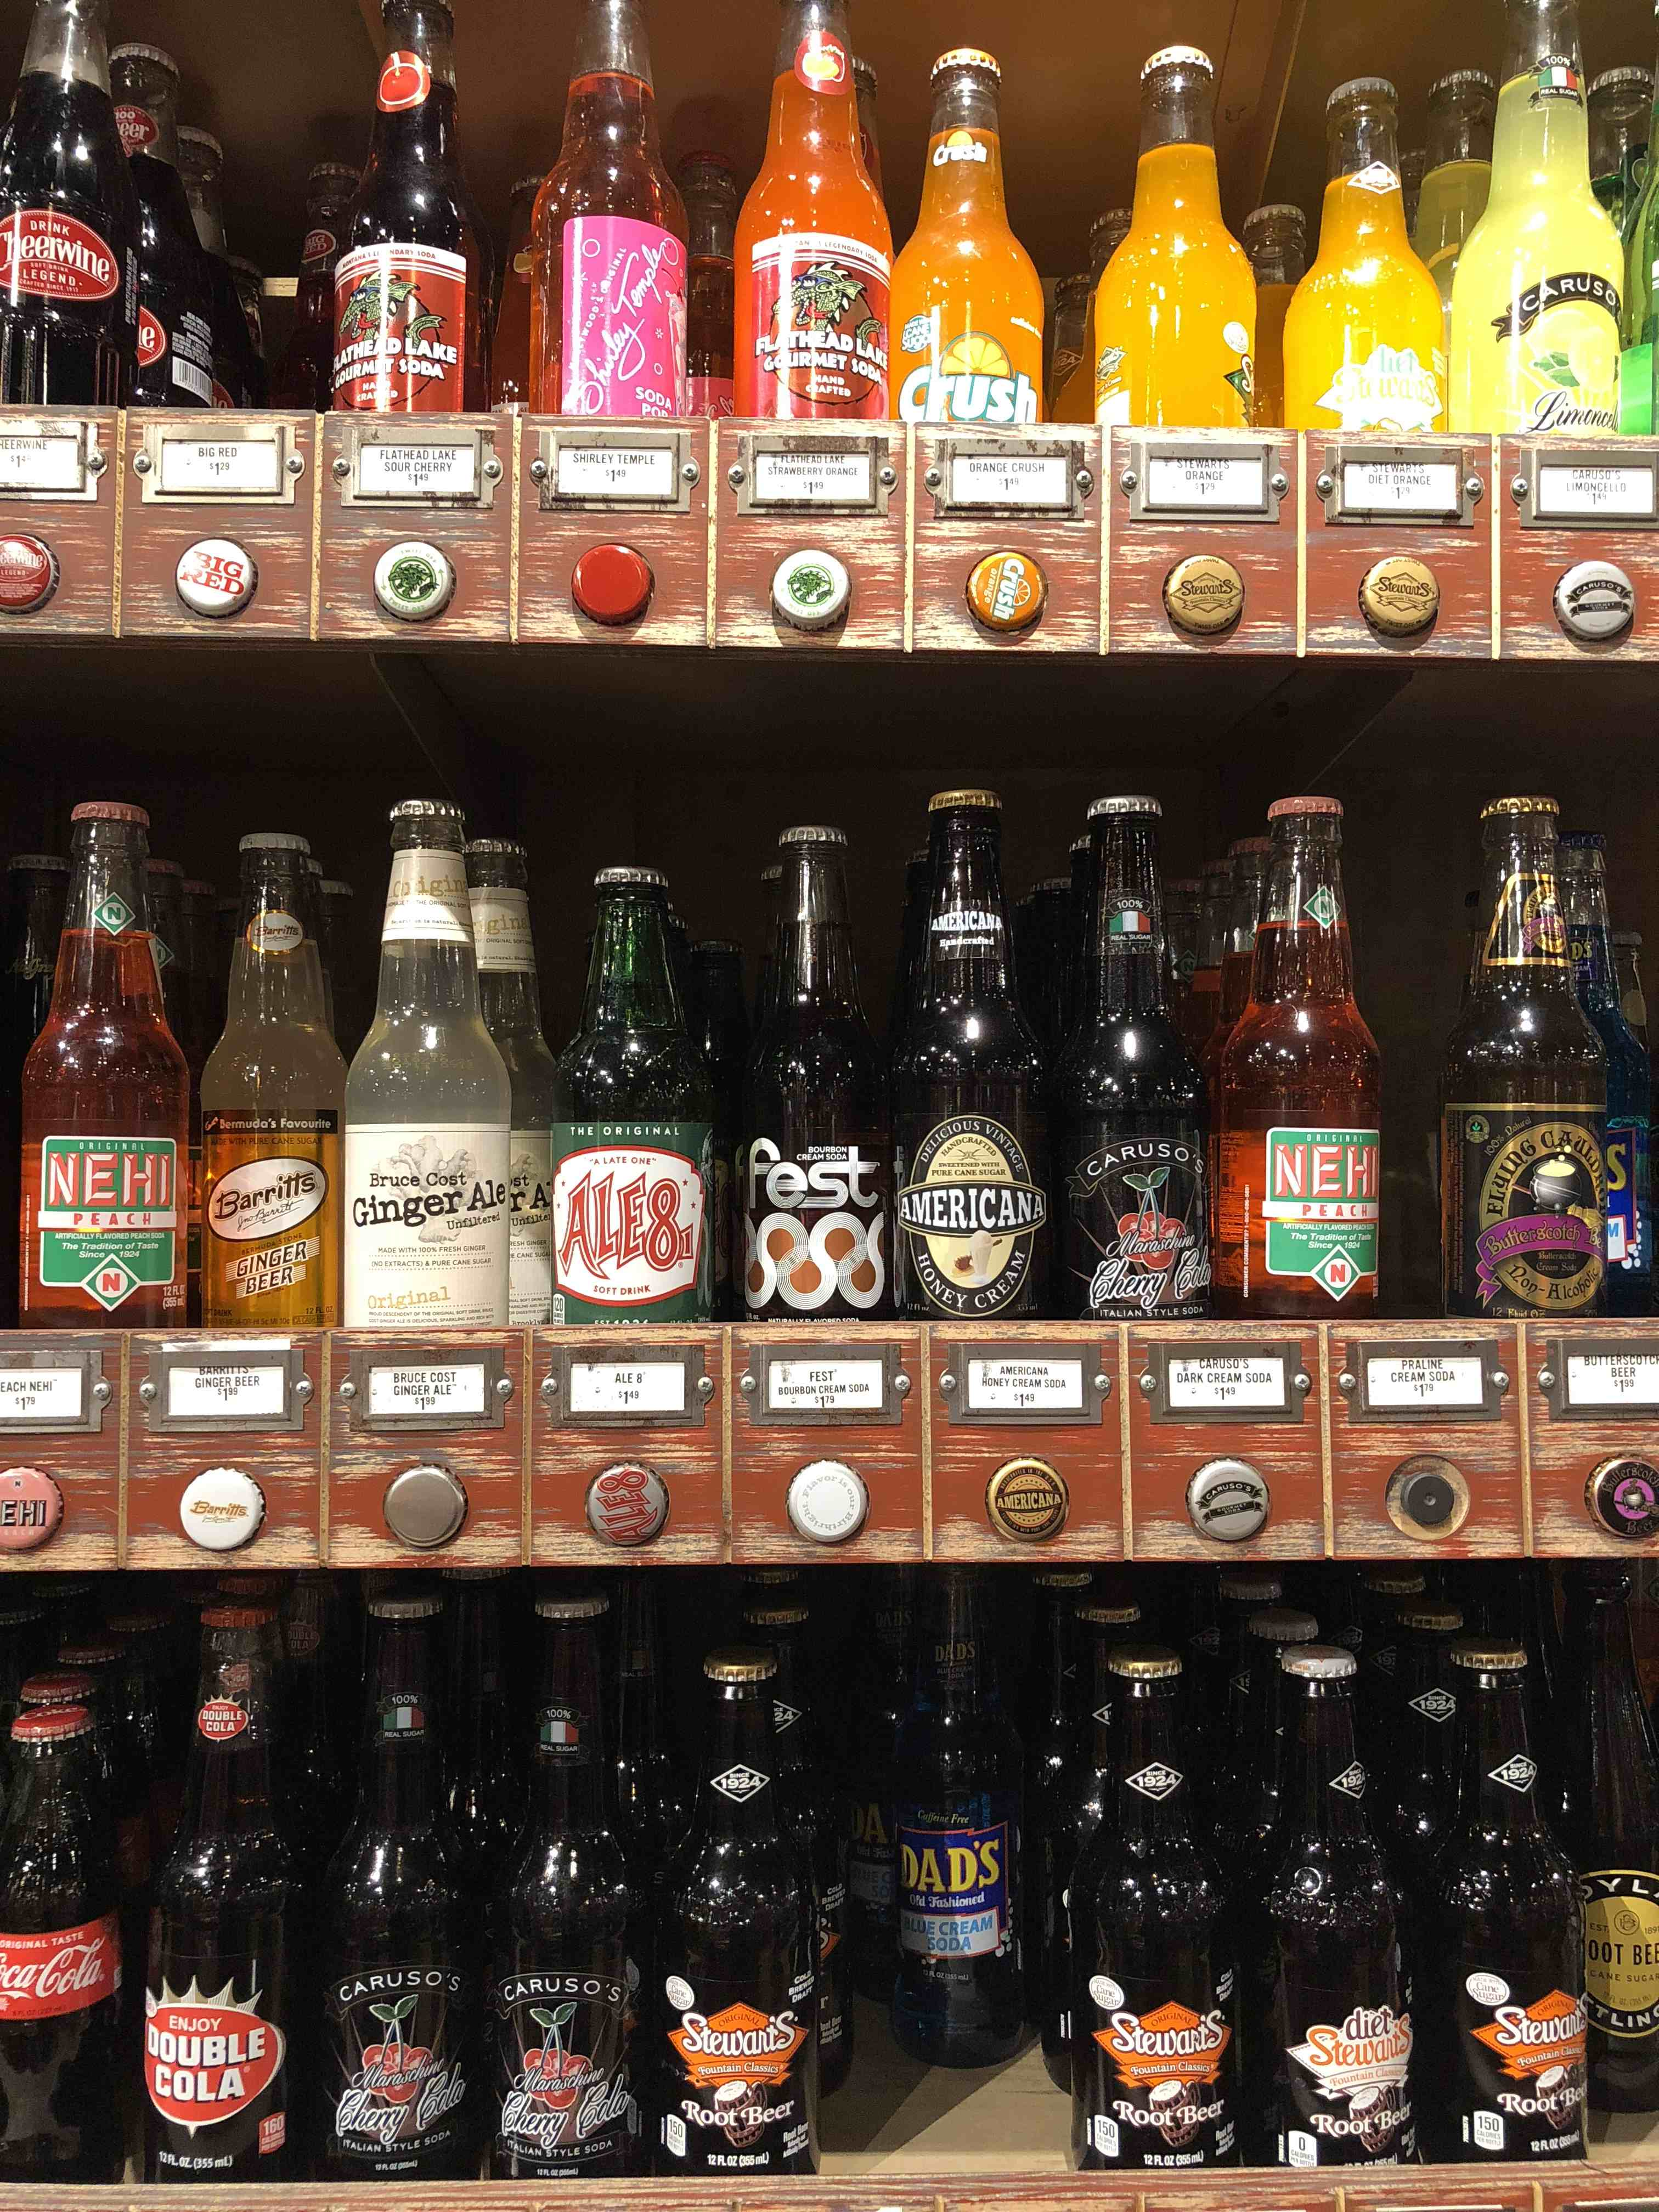 Surprising holiday gifts at Cracker Barrel: Fun sodas | sponsor